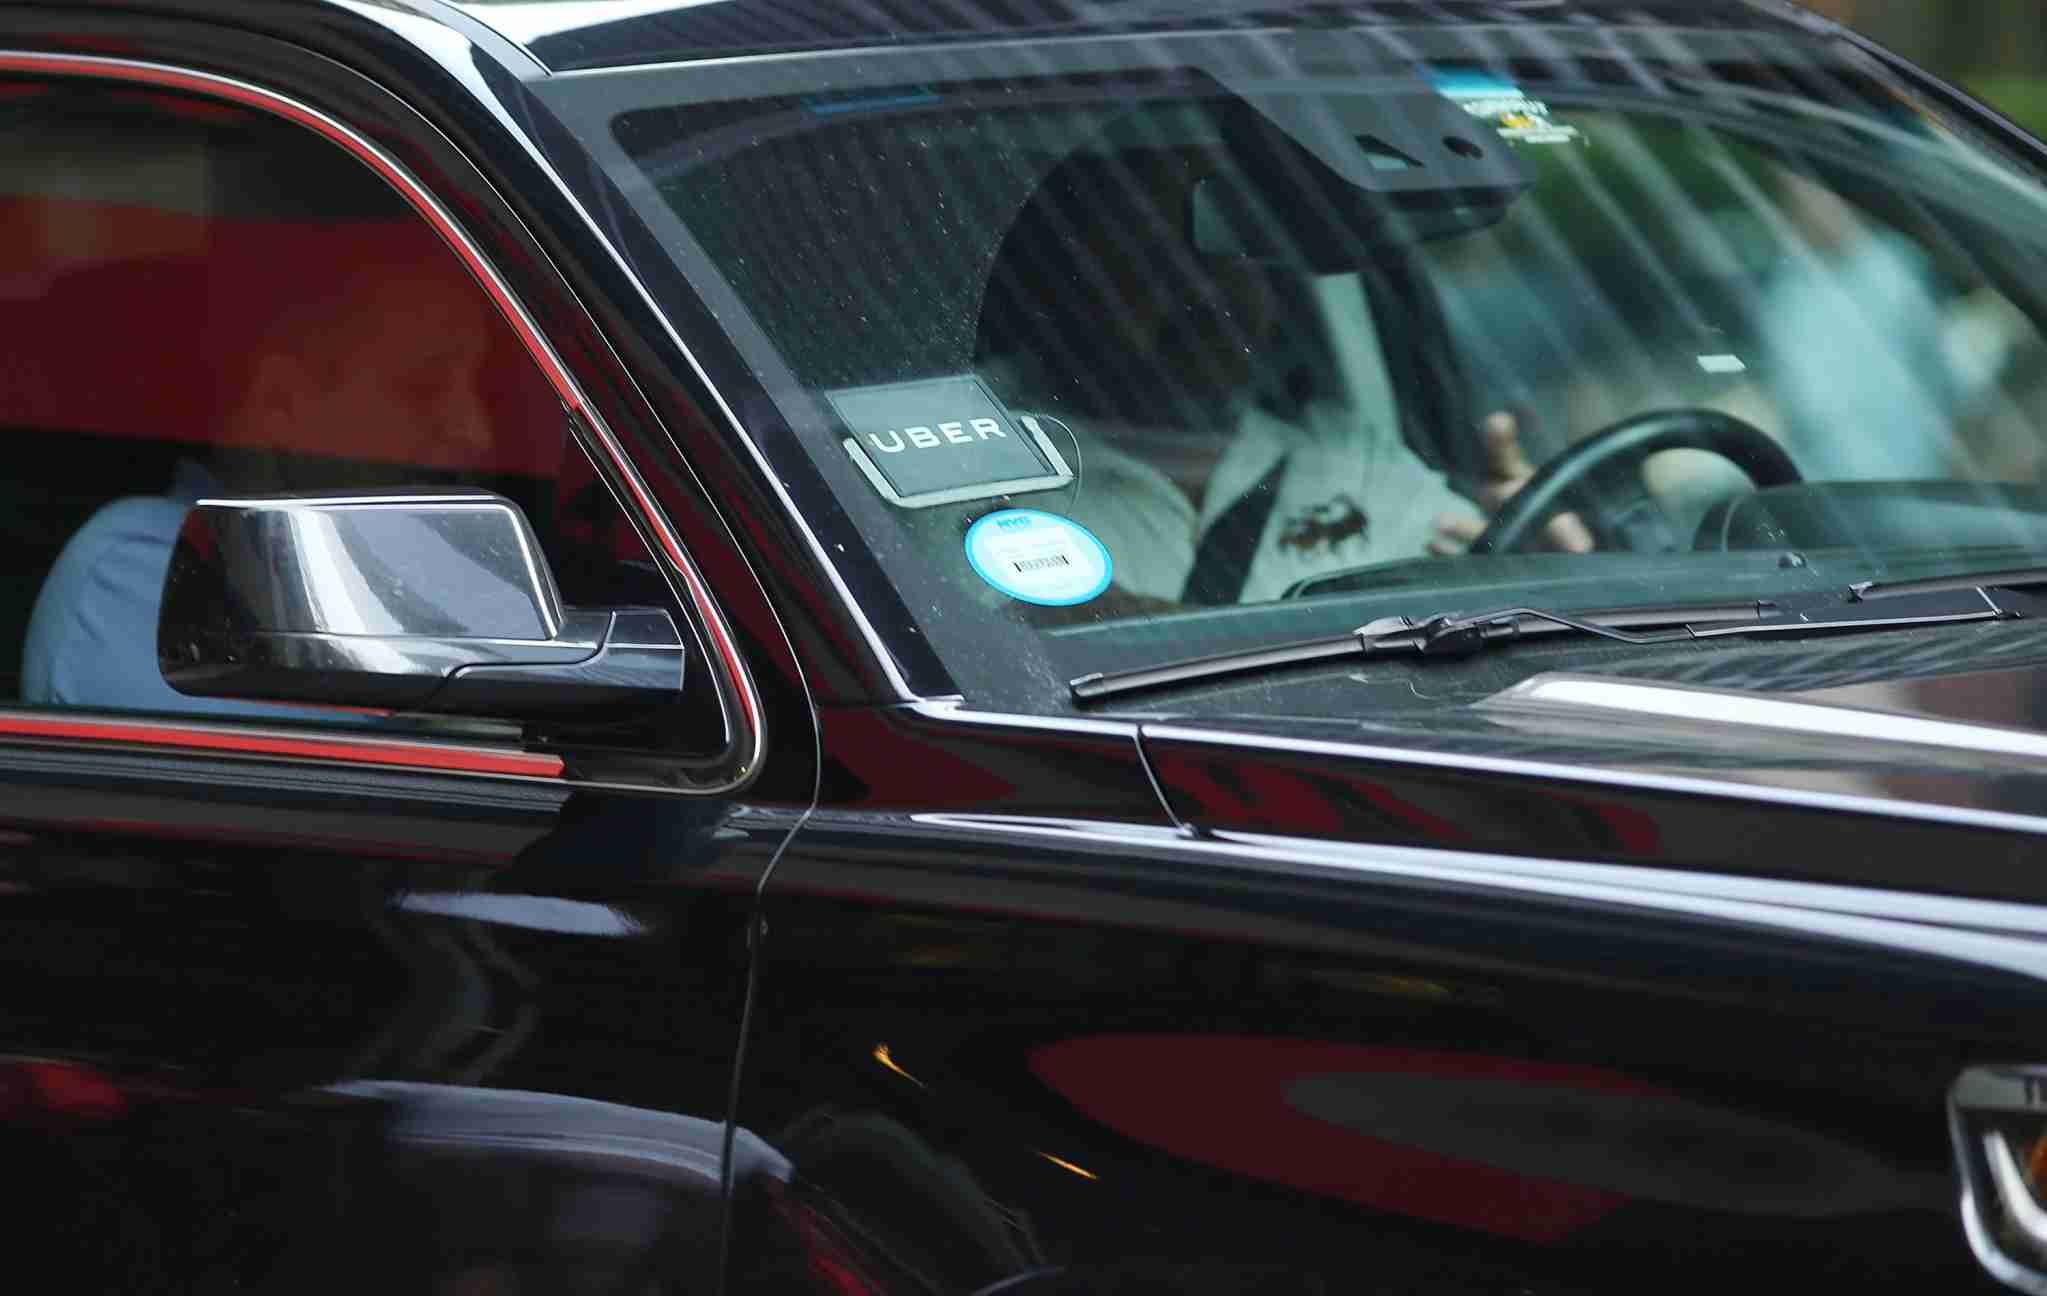 NEW YORK, NY - JUNE 14: An Uber car waits for a client in Manhattan a day after it was announced that Uber co-founder Travis Kalanick will take a leave of absence as chief executive on June 14, 2017 in New York City. The move came after former attorney general Eric H. Holder Jr. and his law firm, Covington & Burling, released 13 pages of recommendations compiled as part of an investigation of sexual harassment at the ride-hailing car service. (Photo by Spencer Platt/Getty Images)